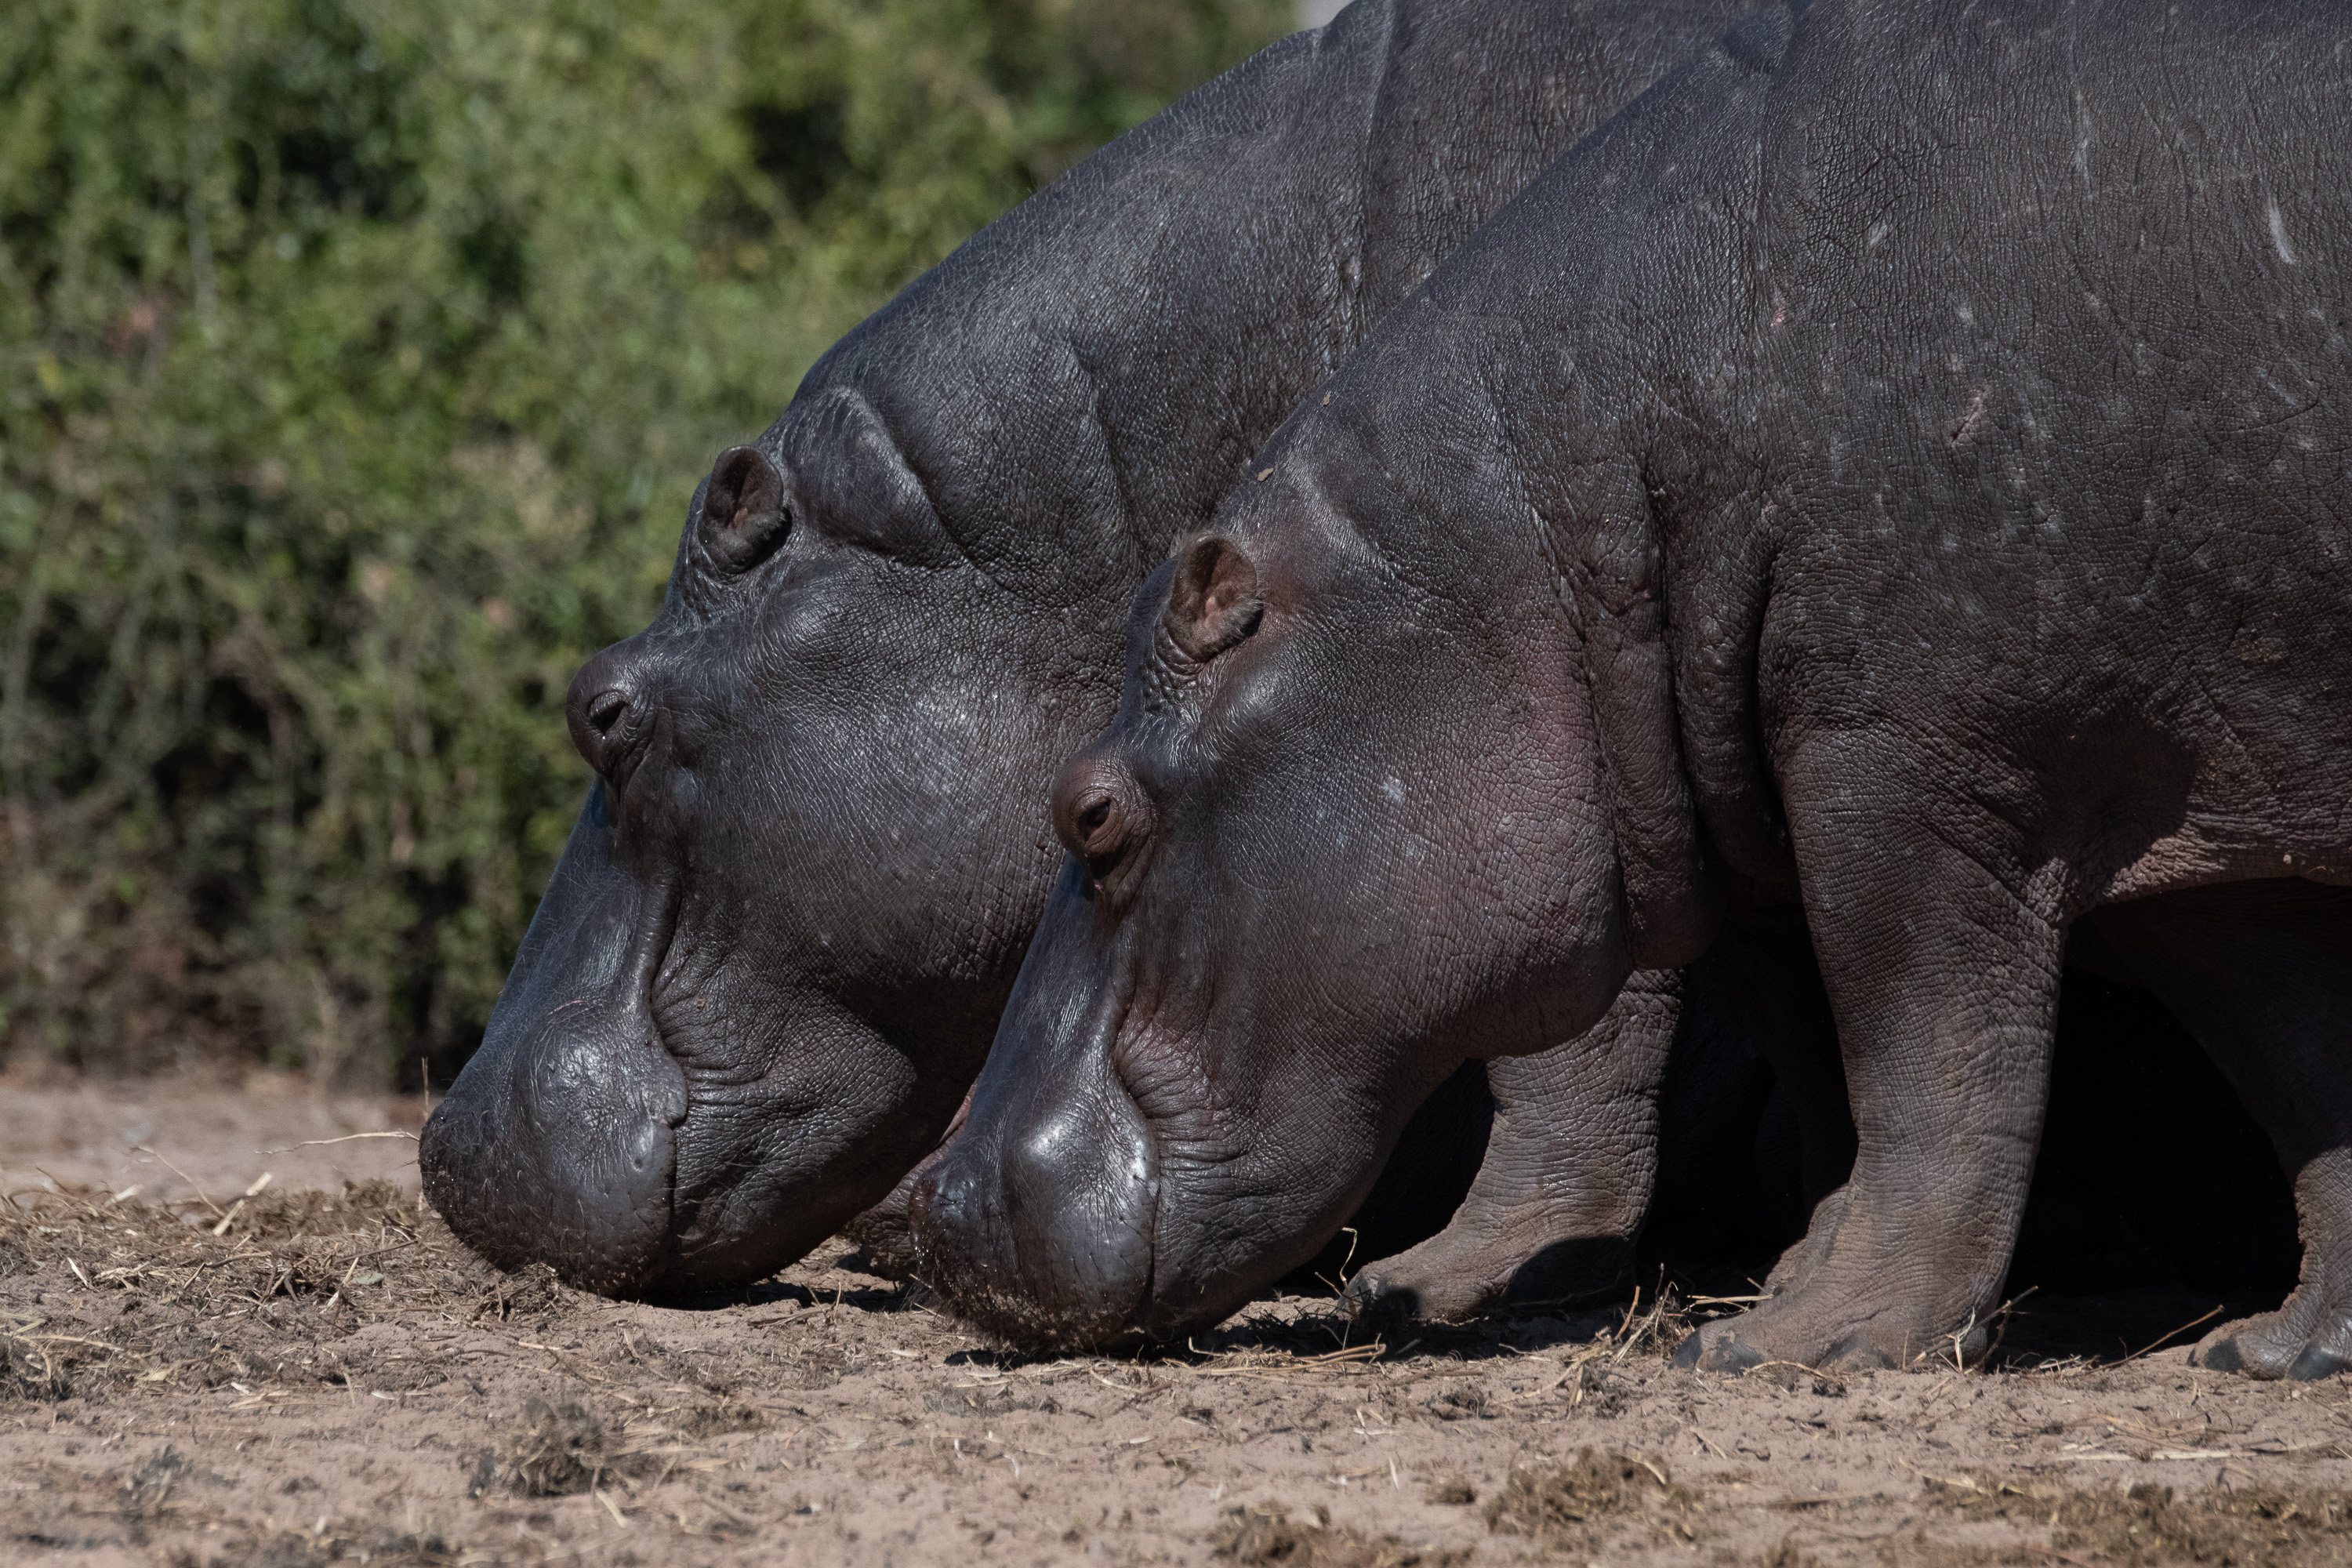 Smiling hippos along the Chobe River in Botswana